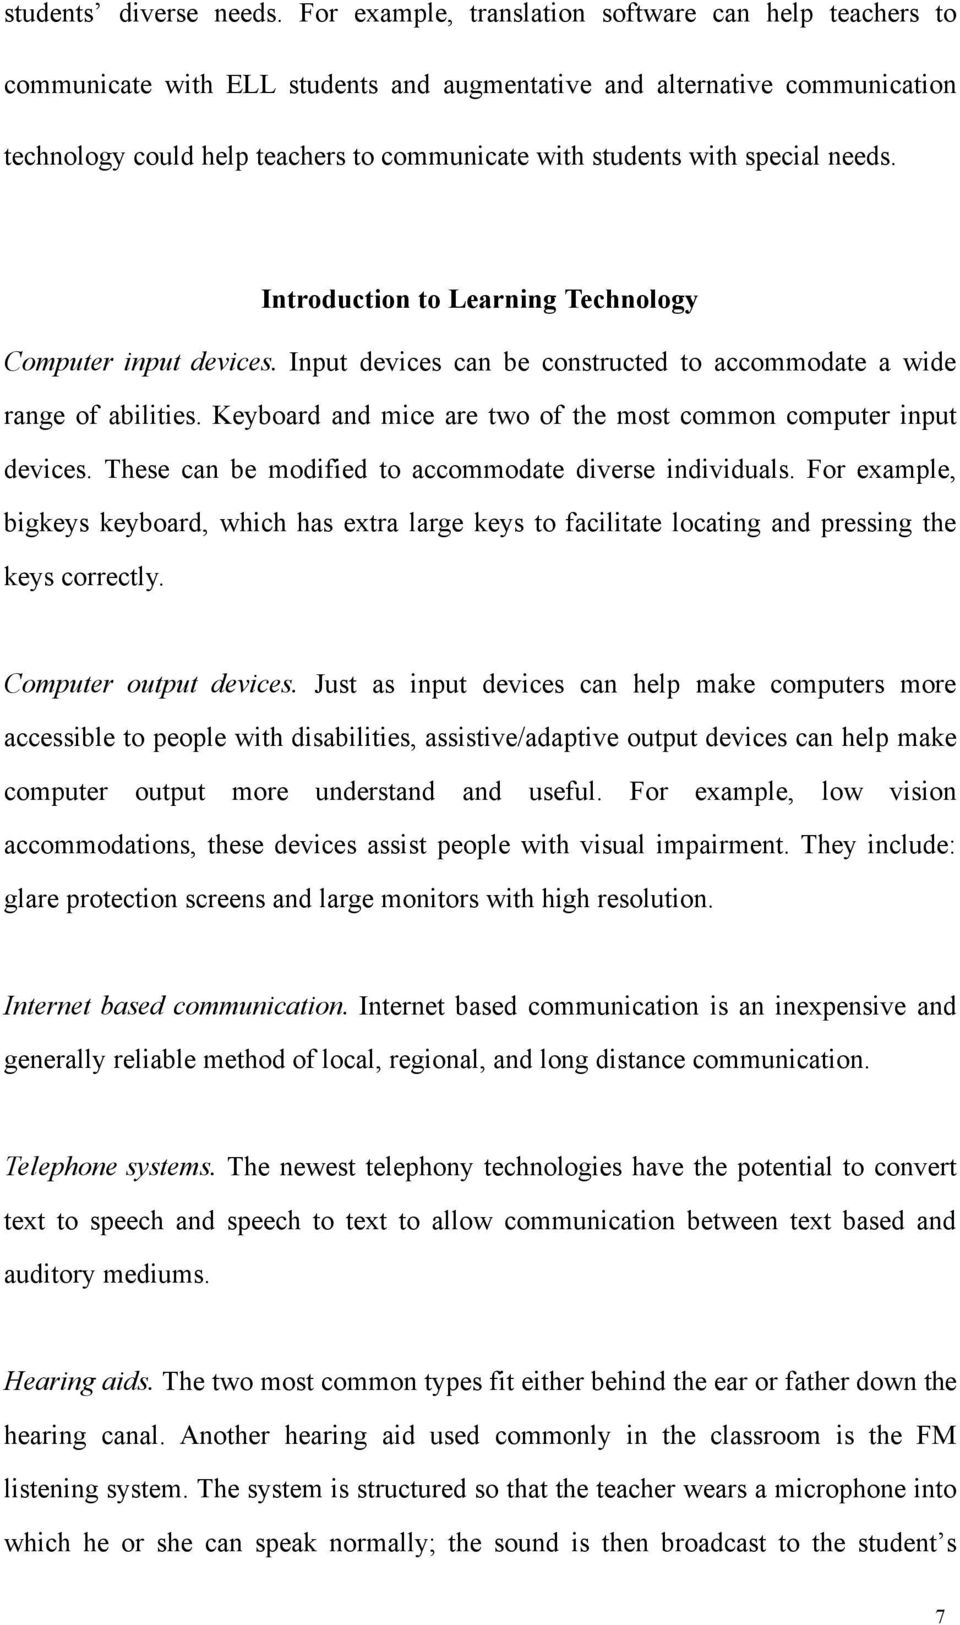 special needs. Introduction to Learning Technology Computer input devices. Input devices can be constructed to accommodate a wide range of abilities.